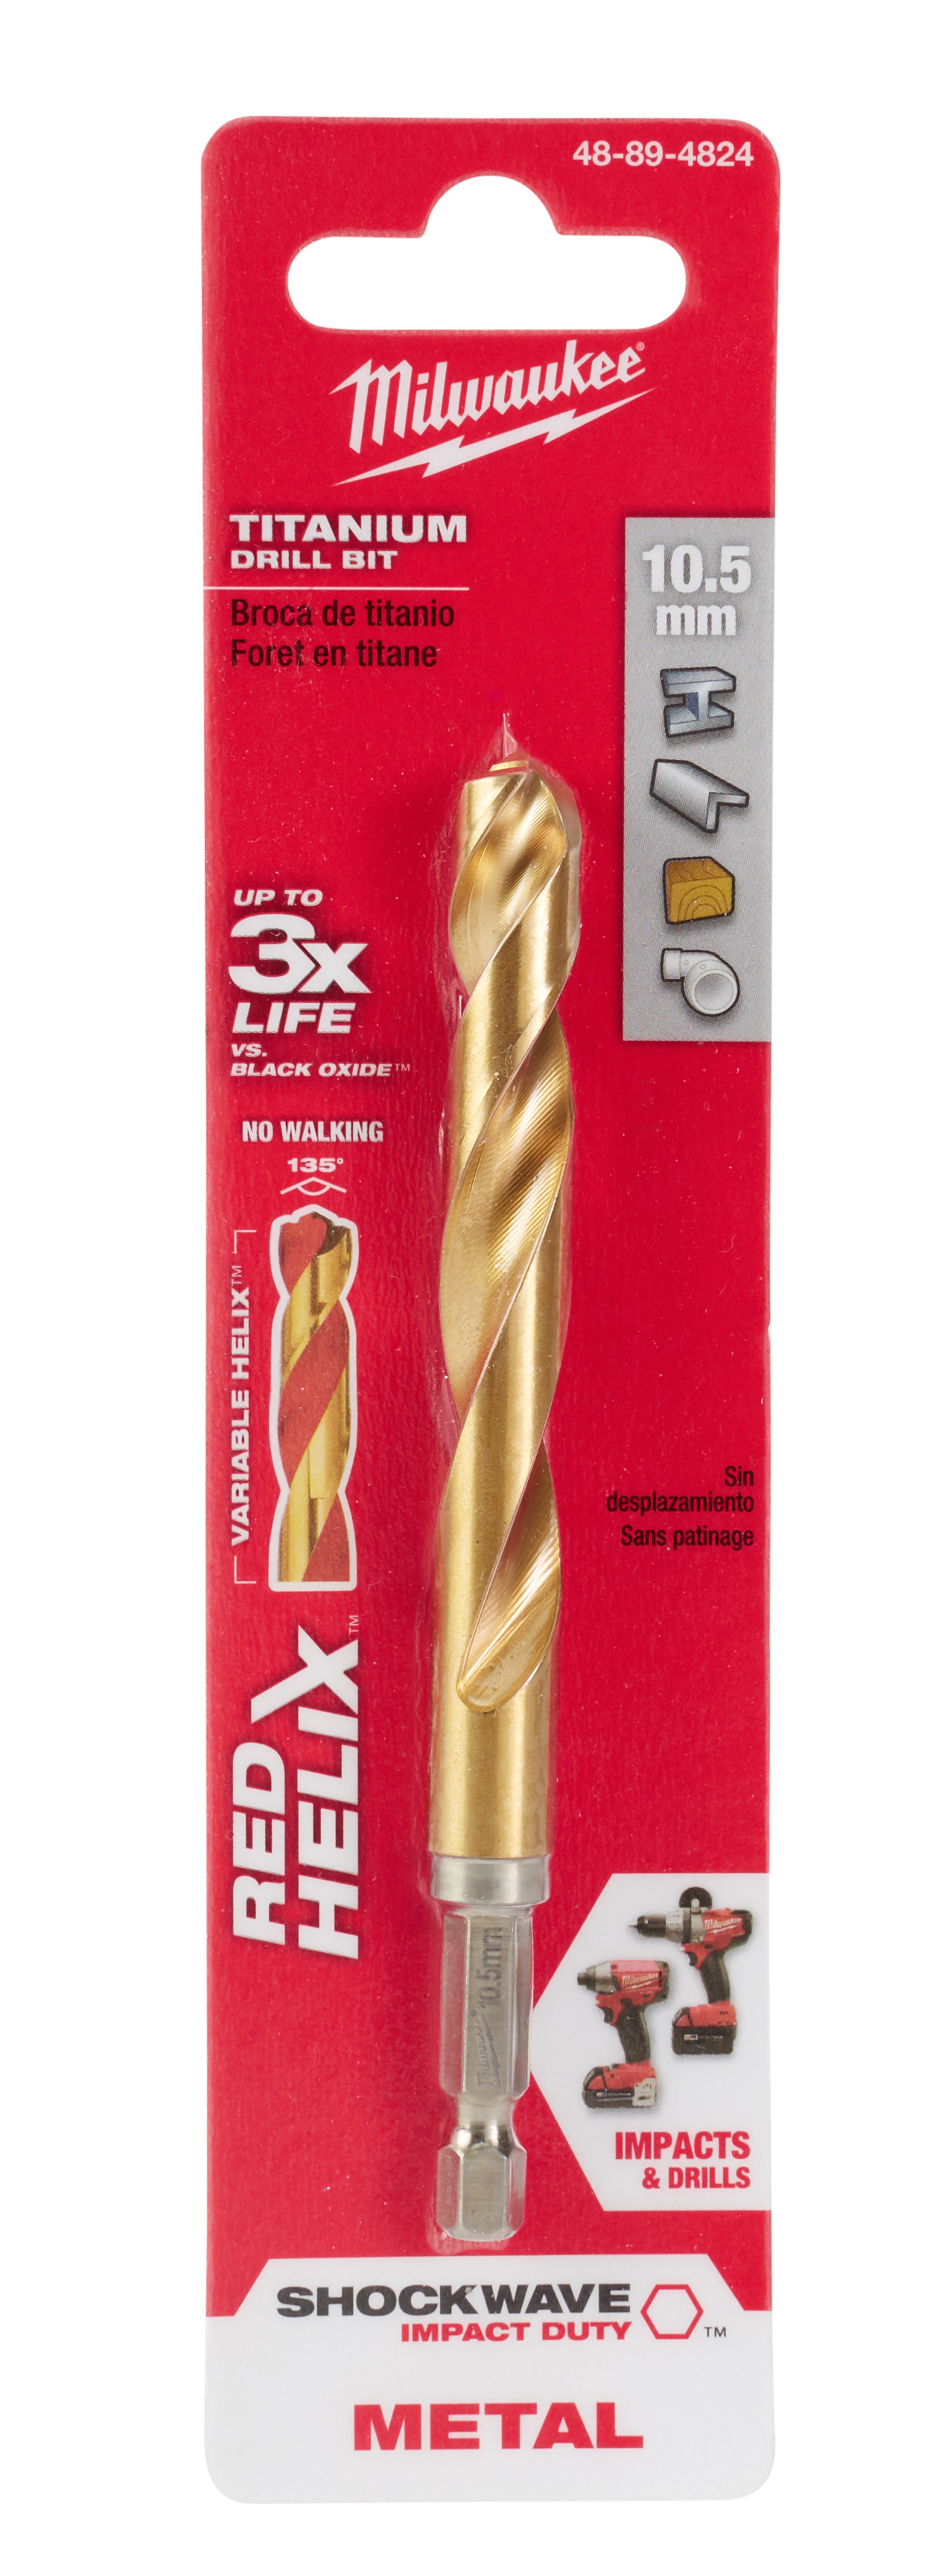 Milwaukee® SHOCKWAVE™ RED HELIX™ 48-89-4824 Hex Shank Impact Drill Bit, 10.5 mm Drill - Metric, 0.4134 in Drill - Decimal Inch, (2